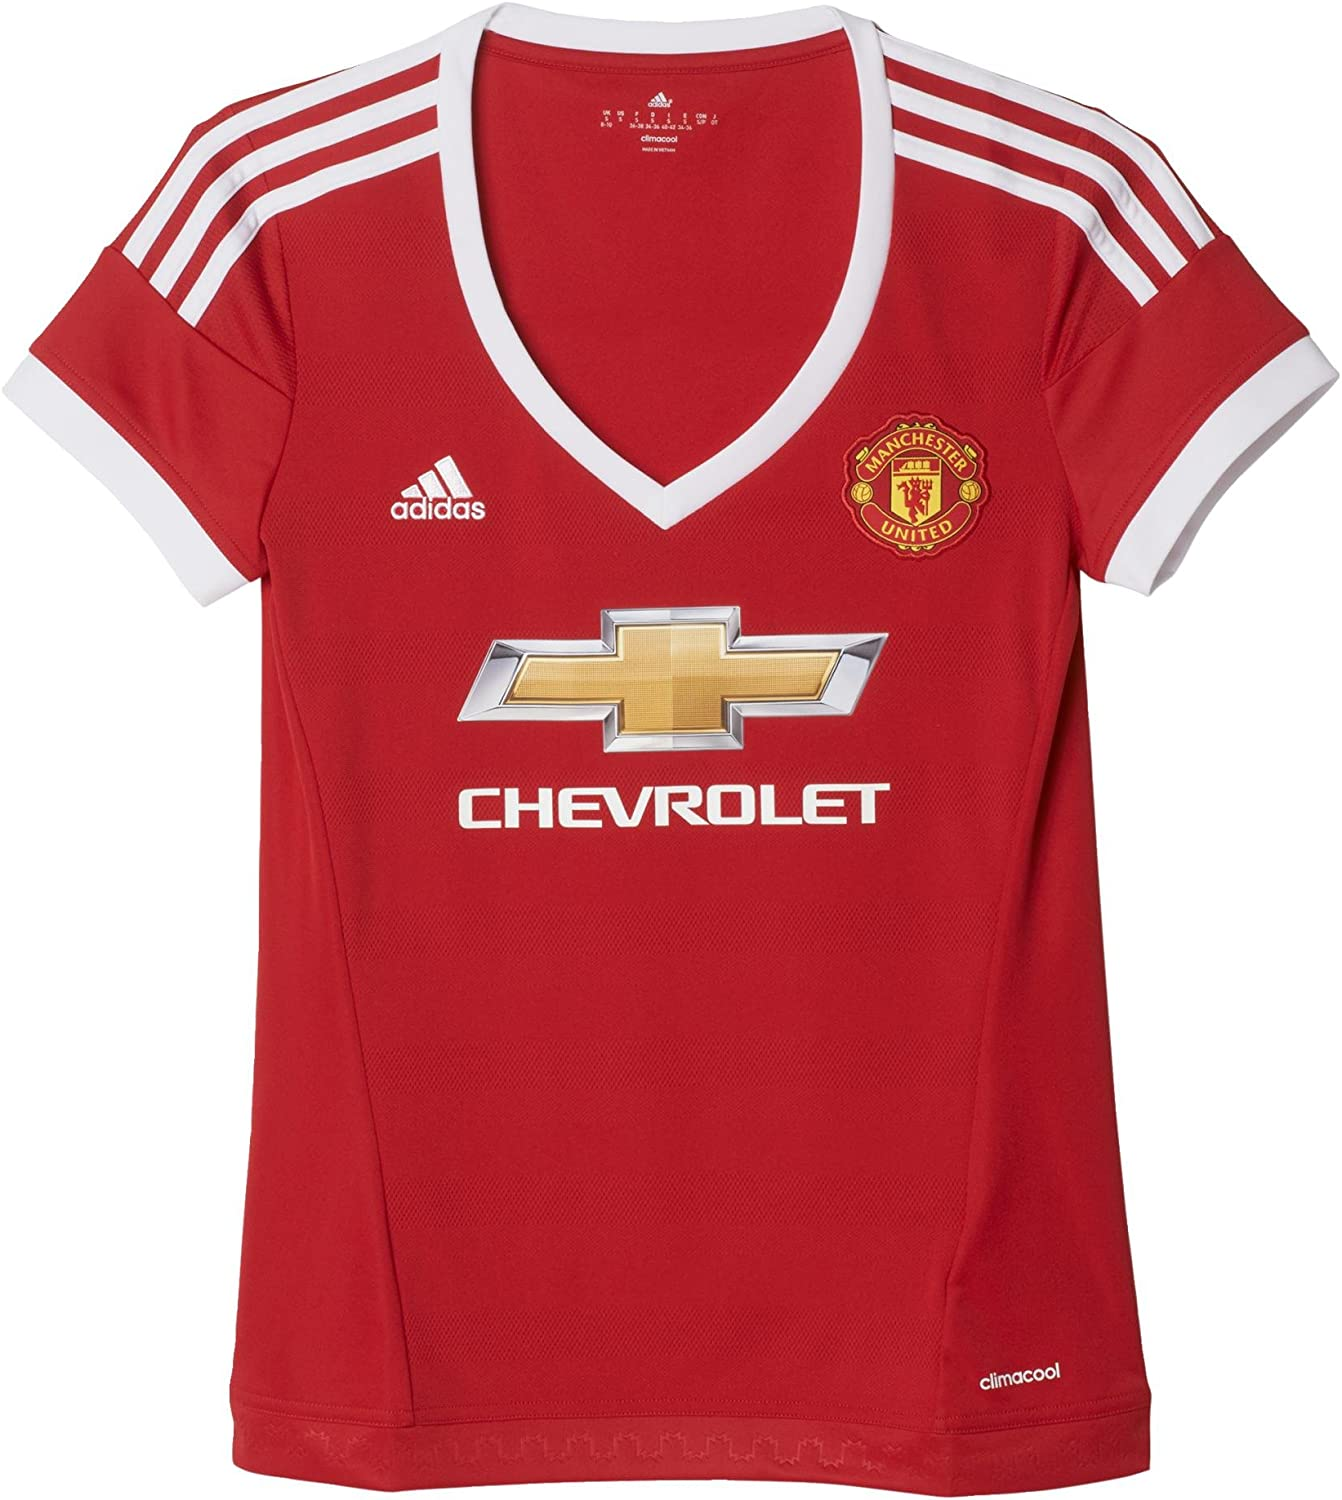 Ladies' Short Sleeved Manchester United